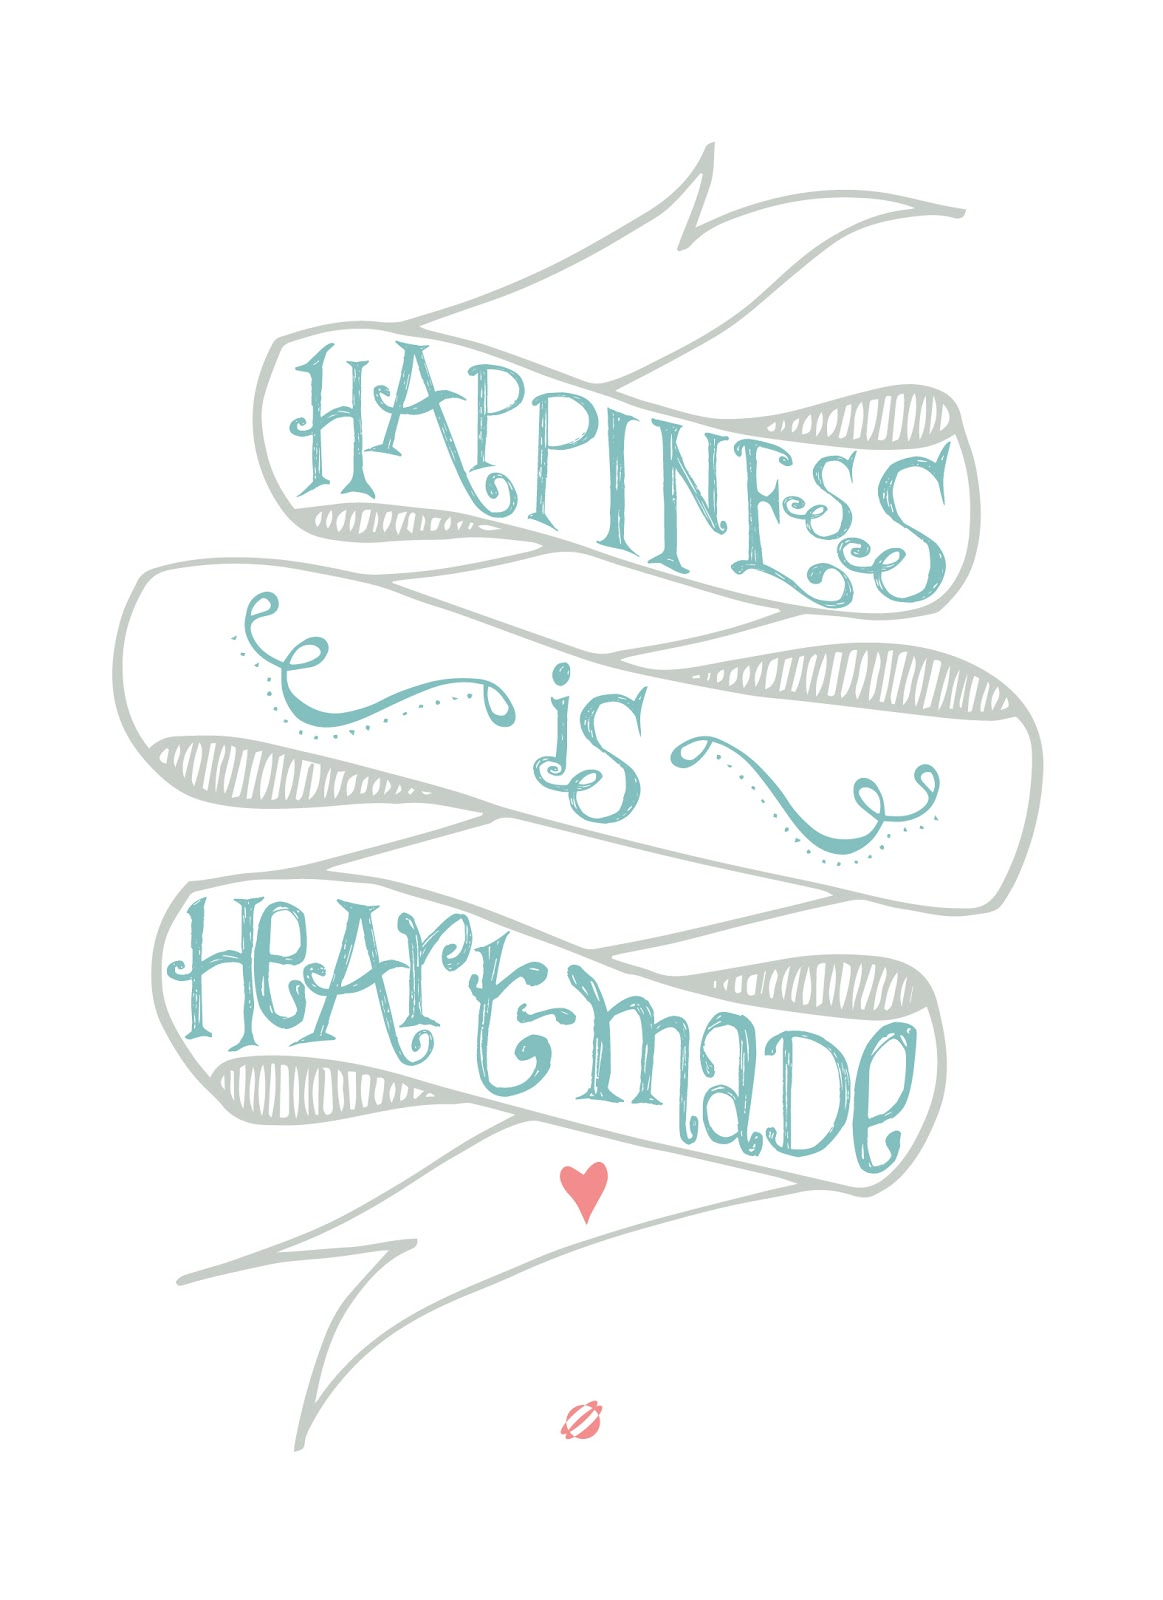 LostBumblebee ©2014 Happiness is Heart-Made! Free Printable- Personal Use Only!